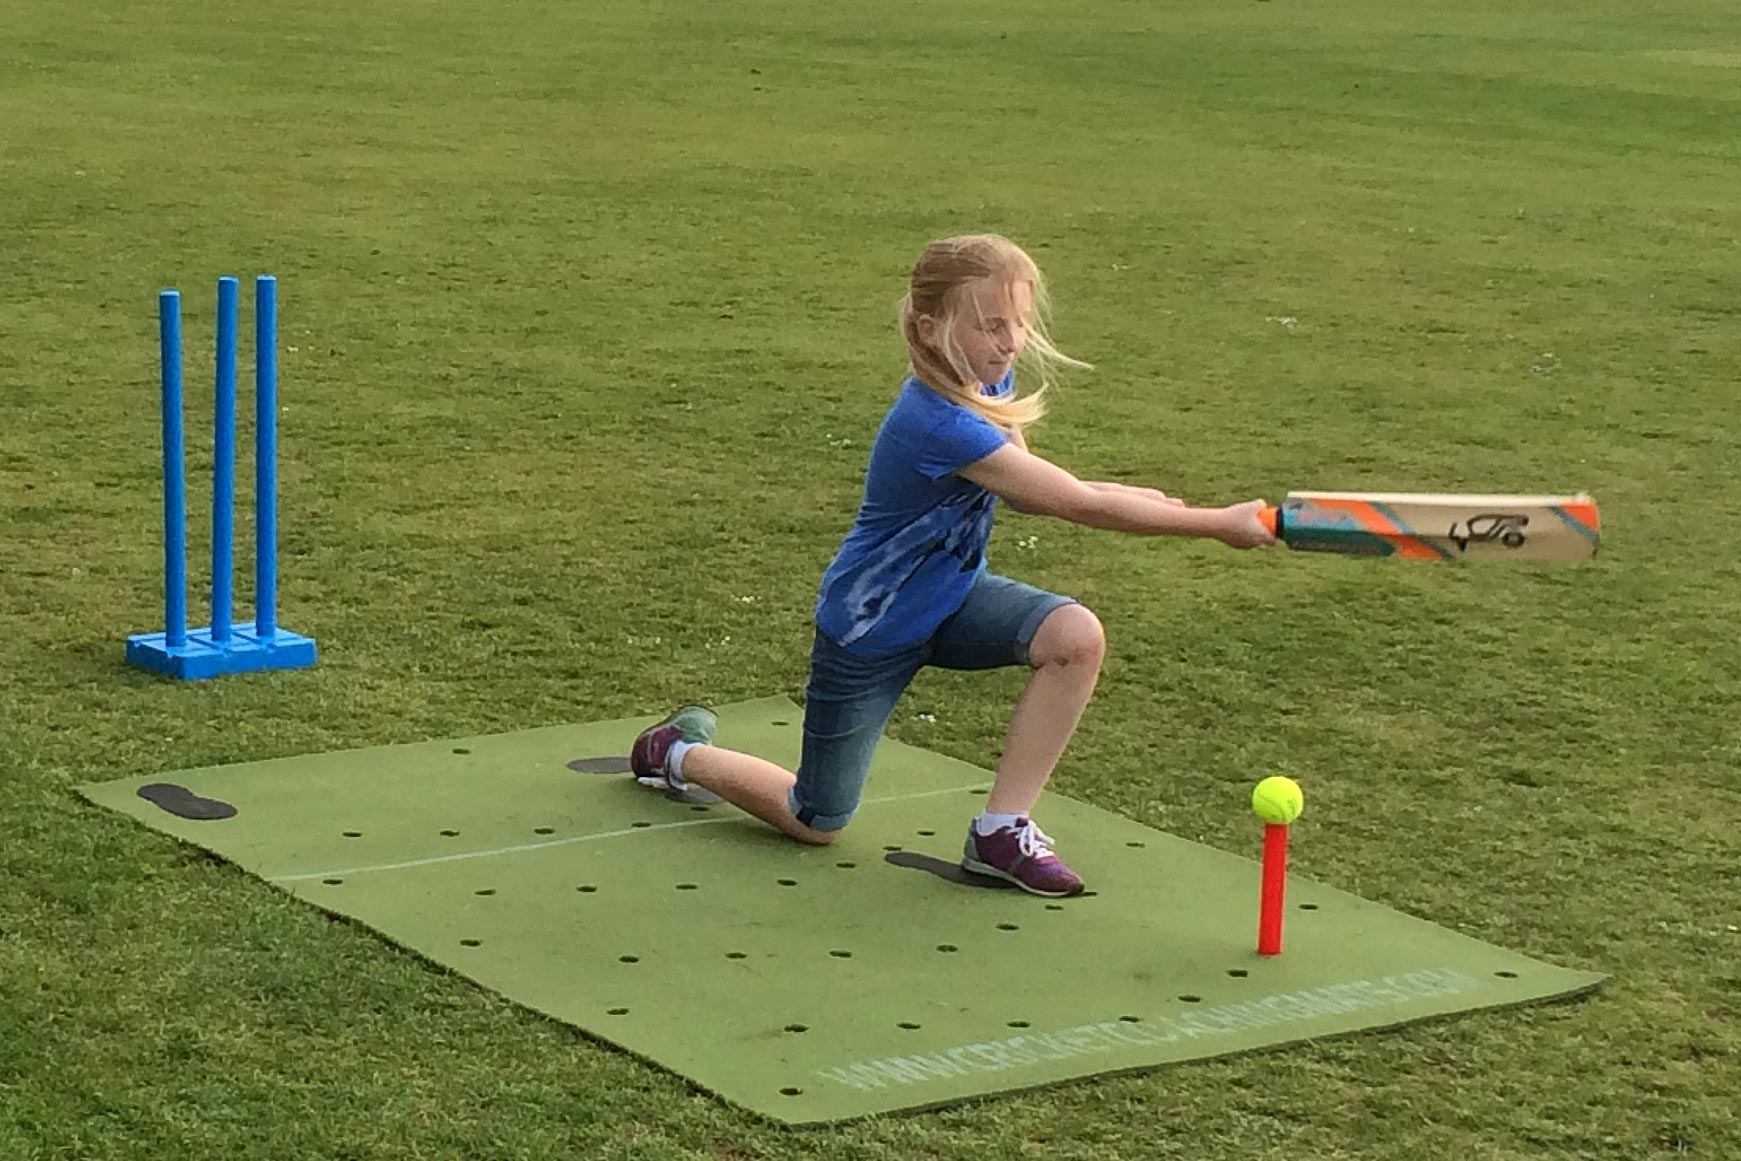 Girls cricket coach. Practice cricket in the garden with the cricket training, practice coaching mat